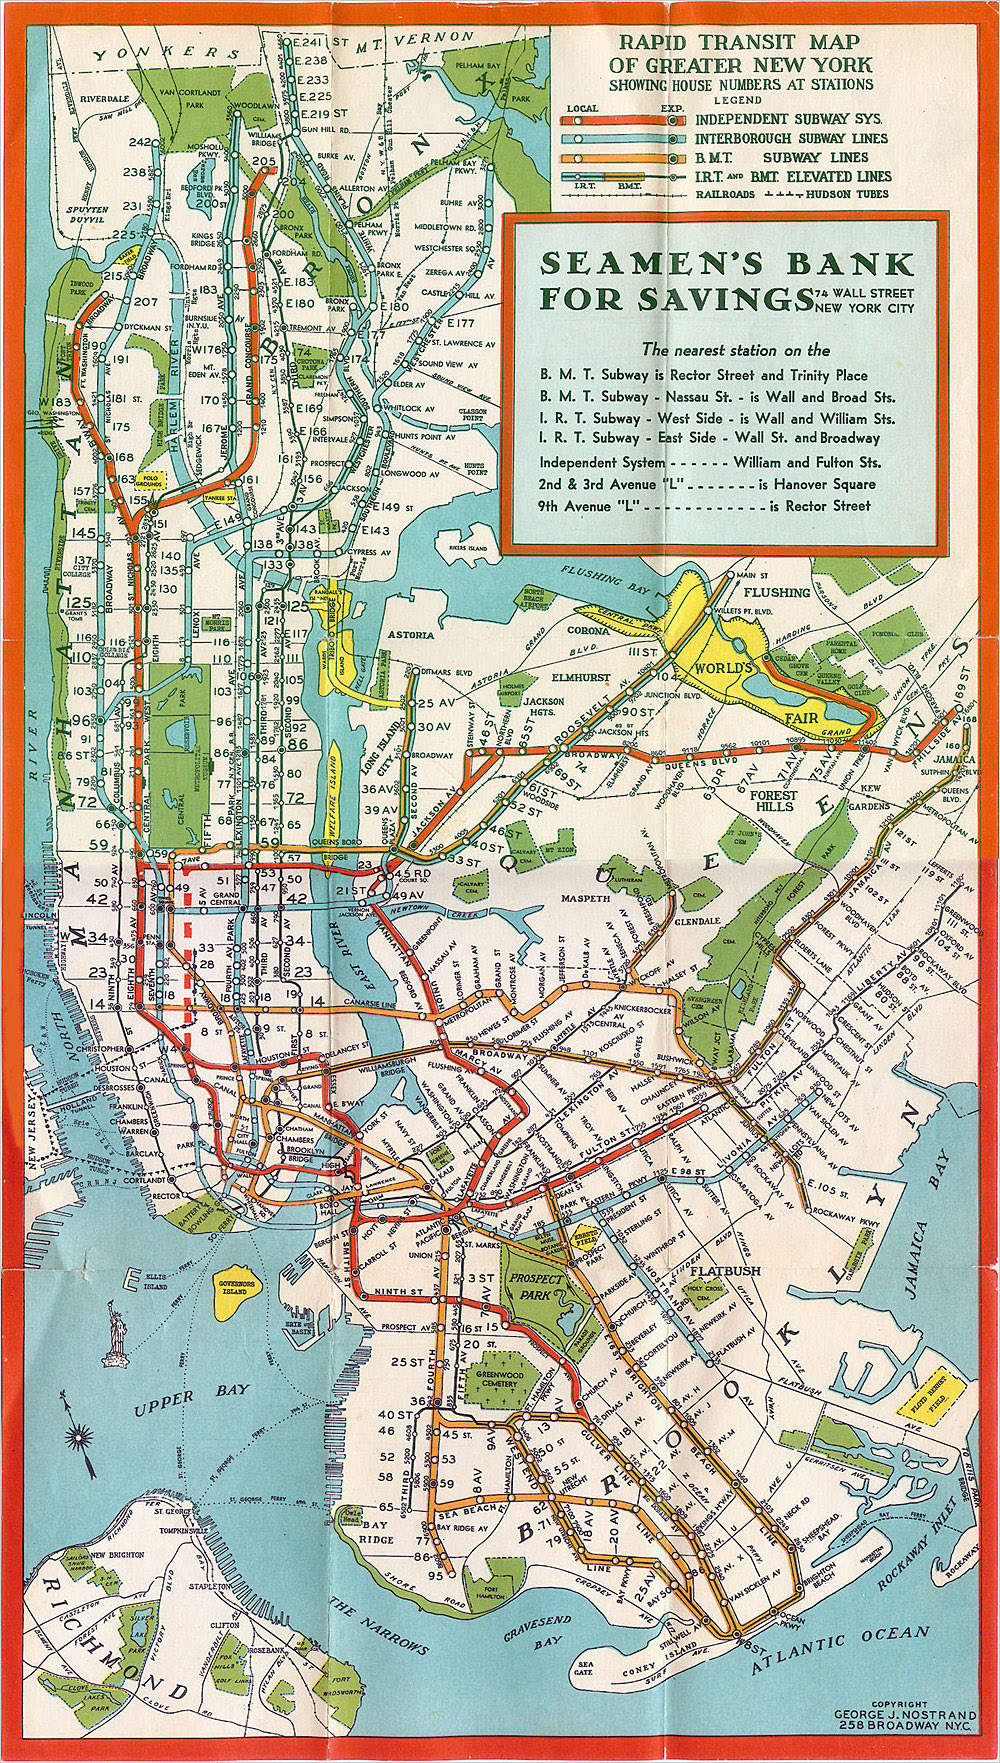 manhattan new york subway map 1930 subway map of manhattan new york 1930